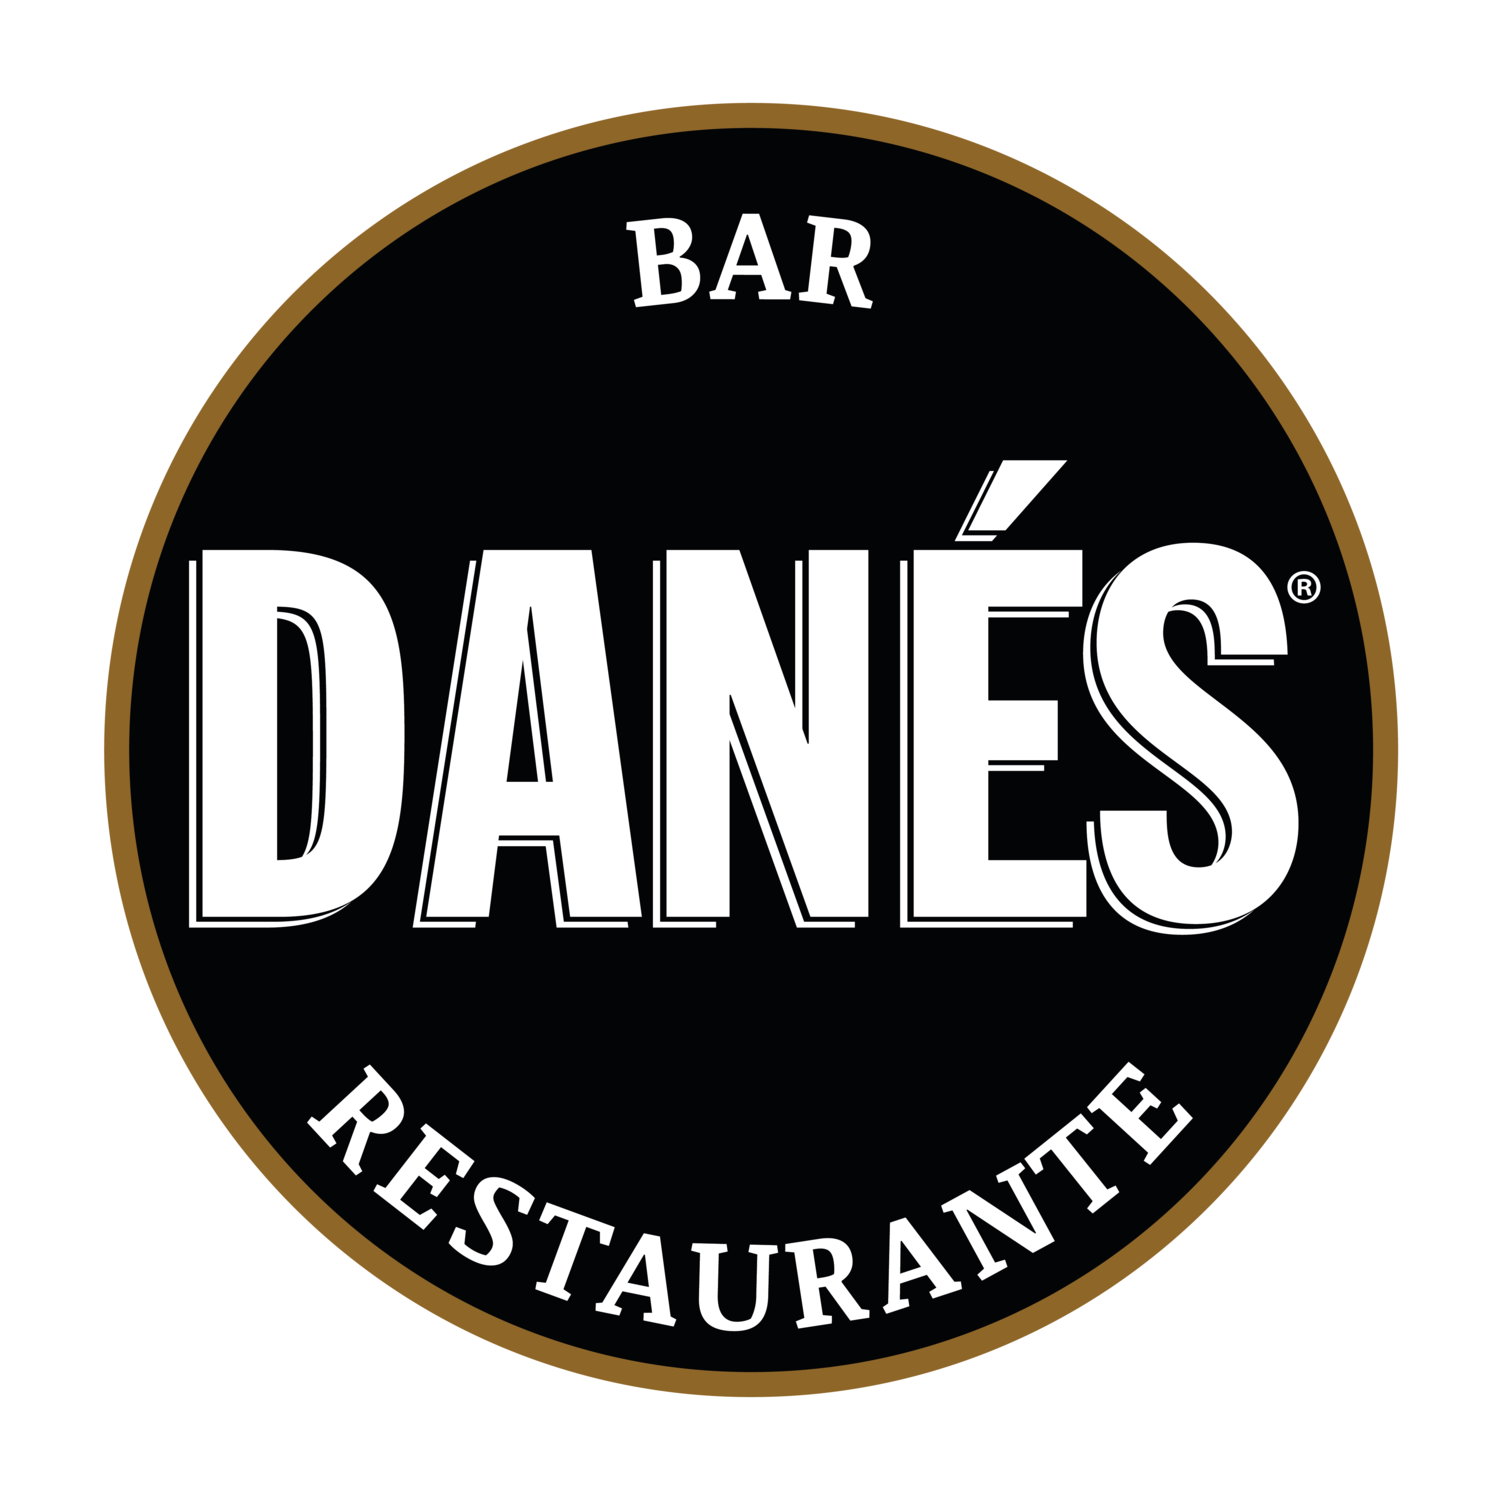 Danés, Bar & Restaurant